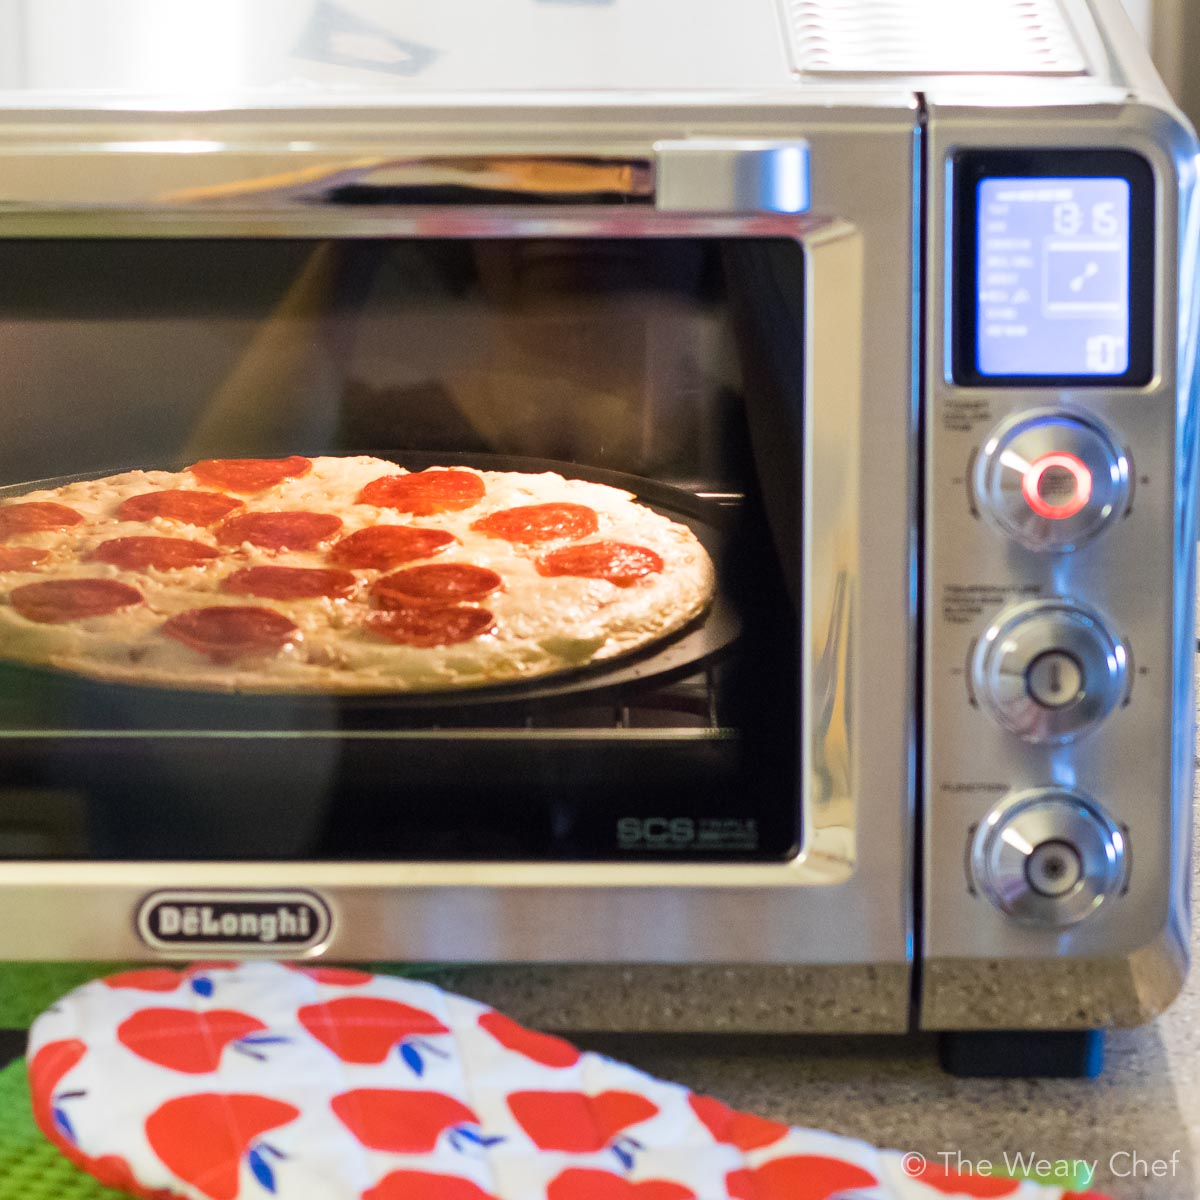 reviews pizza walmart oven product countertop beach convection hamilton toaster kitchen model com